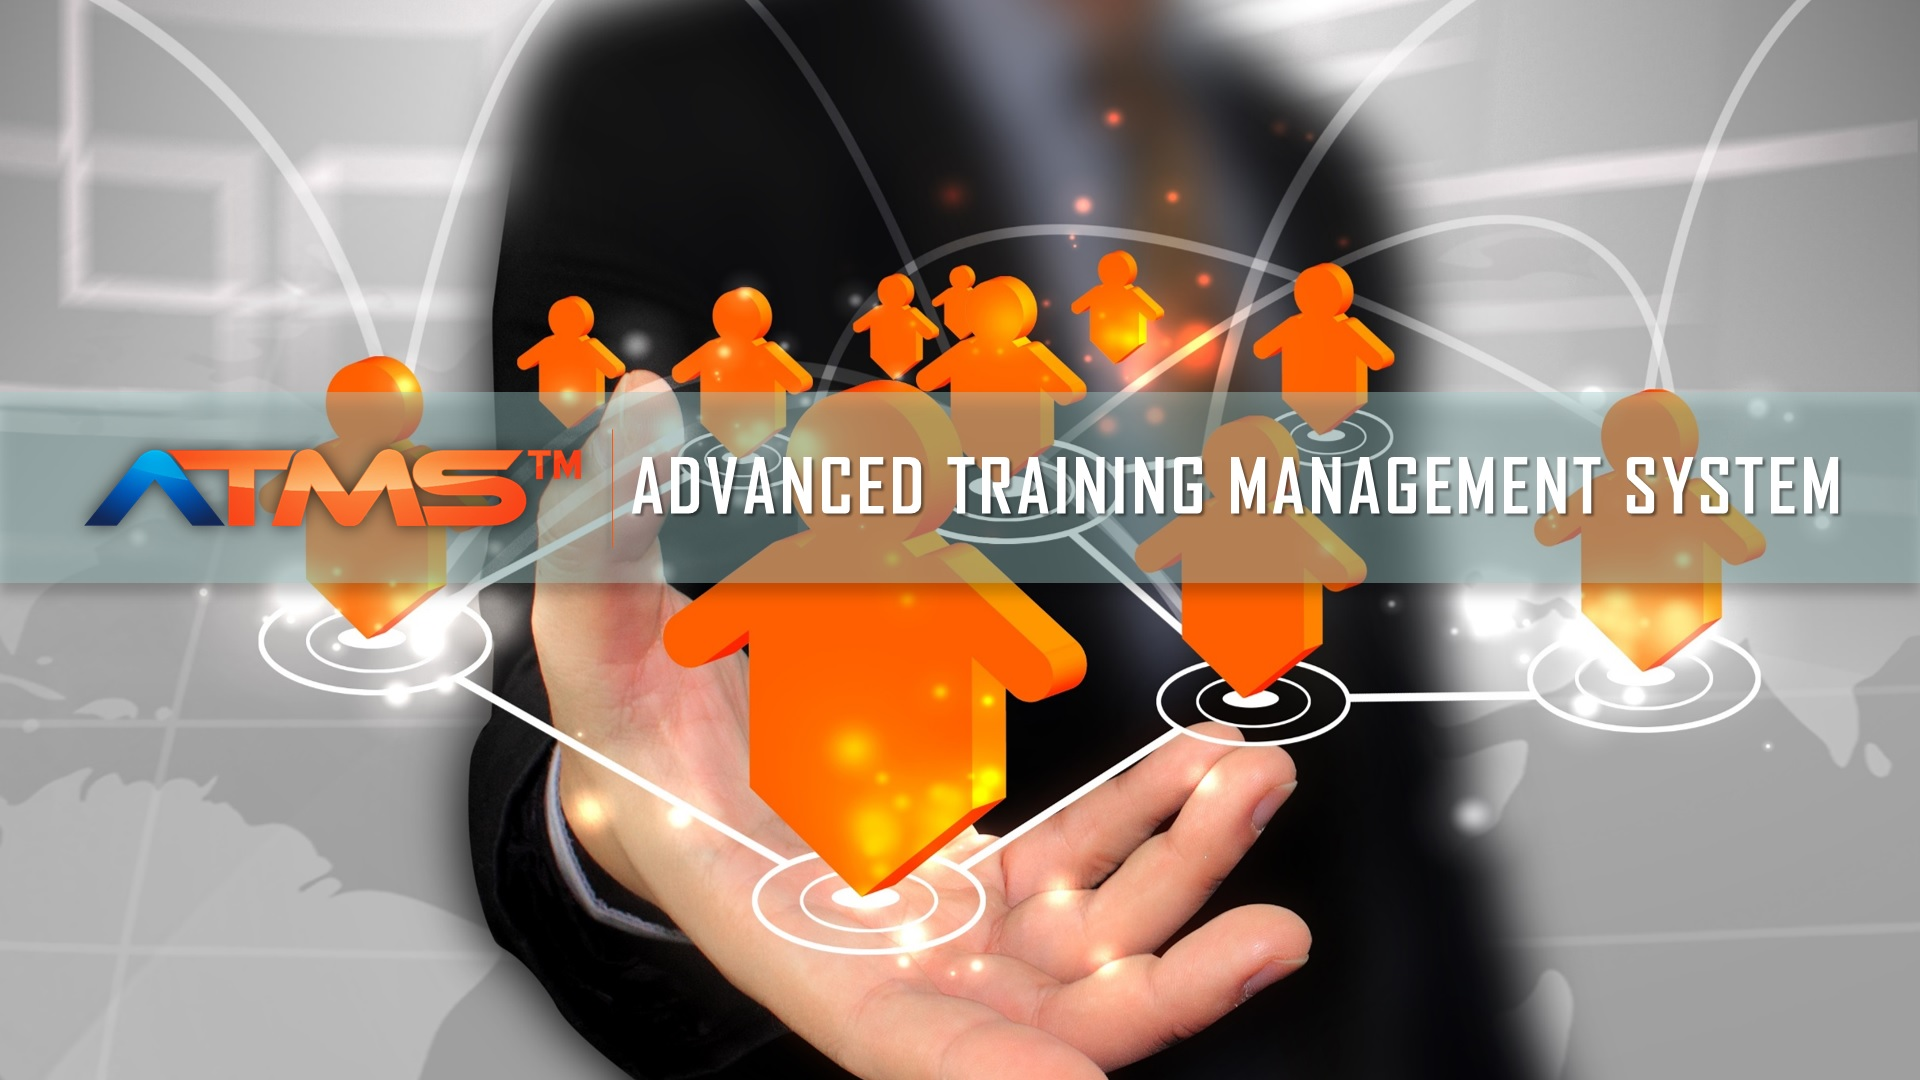 ATMS-Advance-Training-Management-System-Slide-1-1